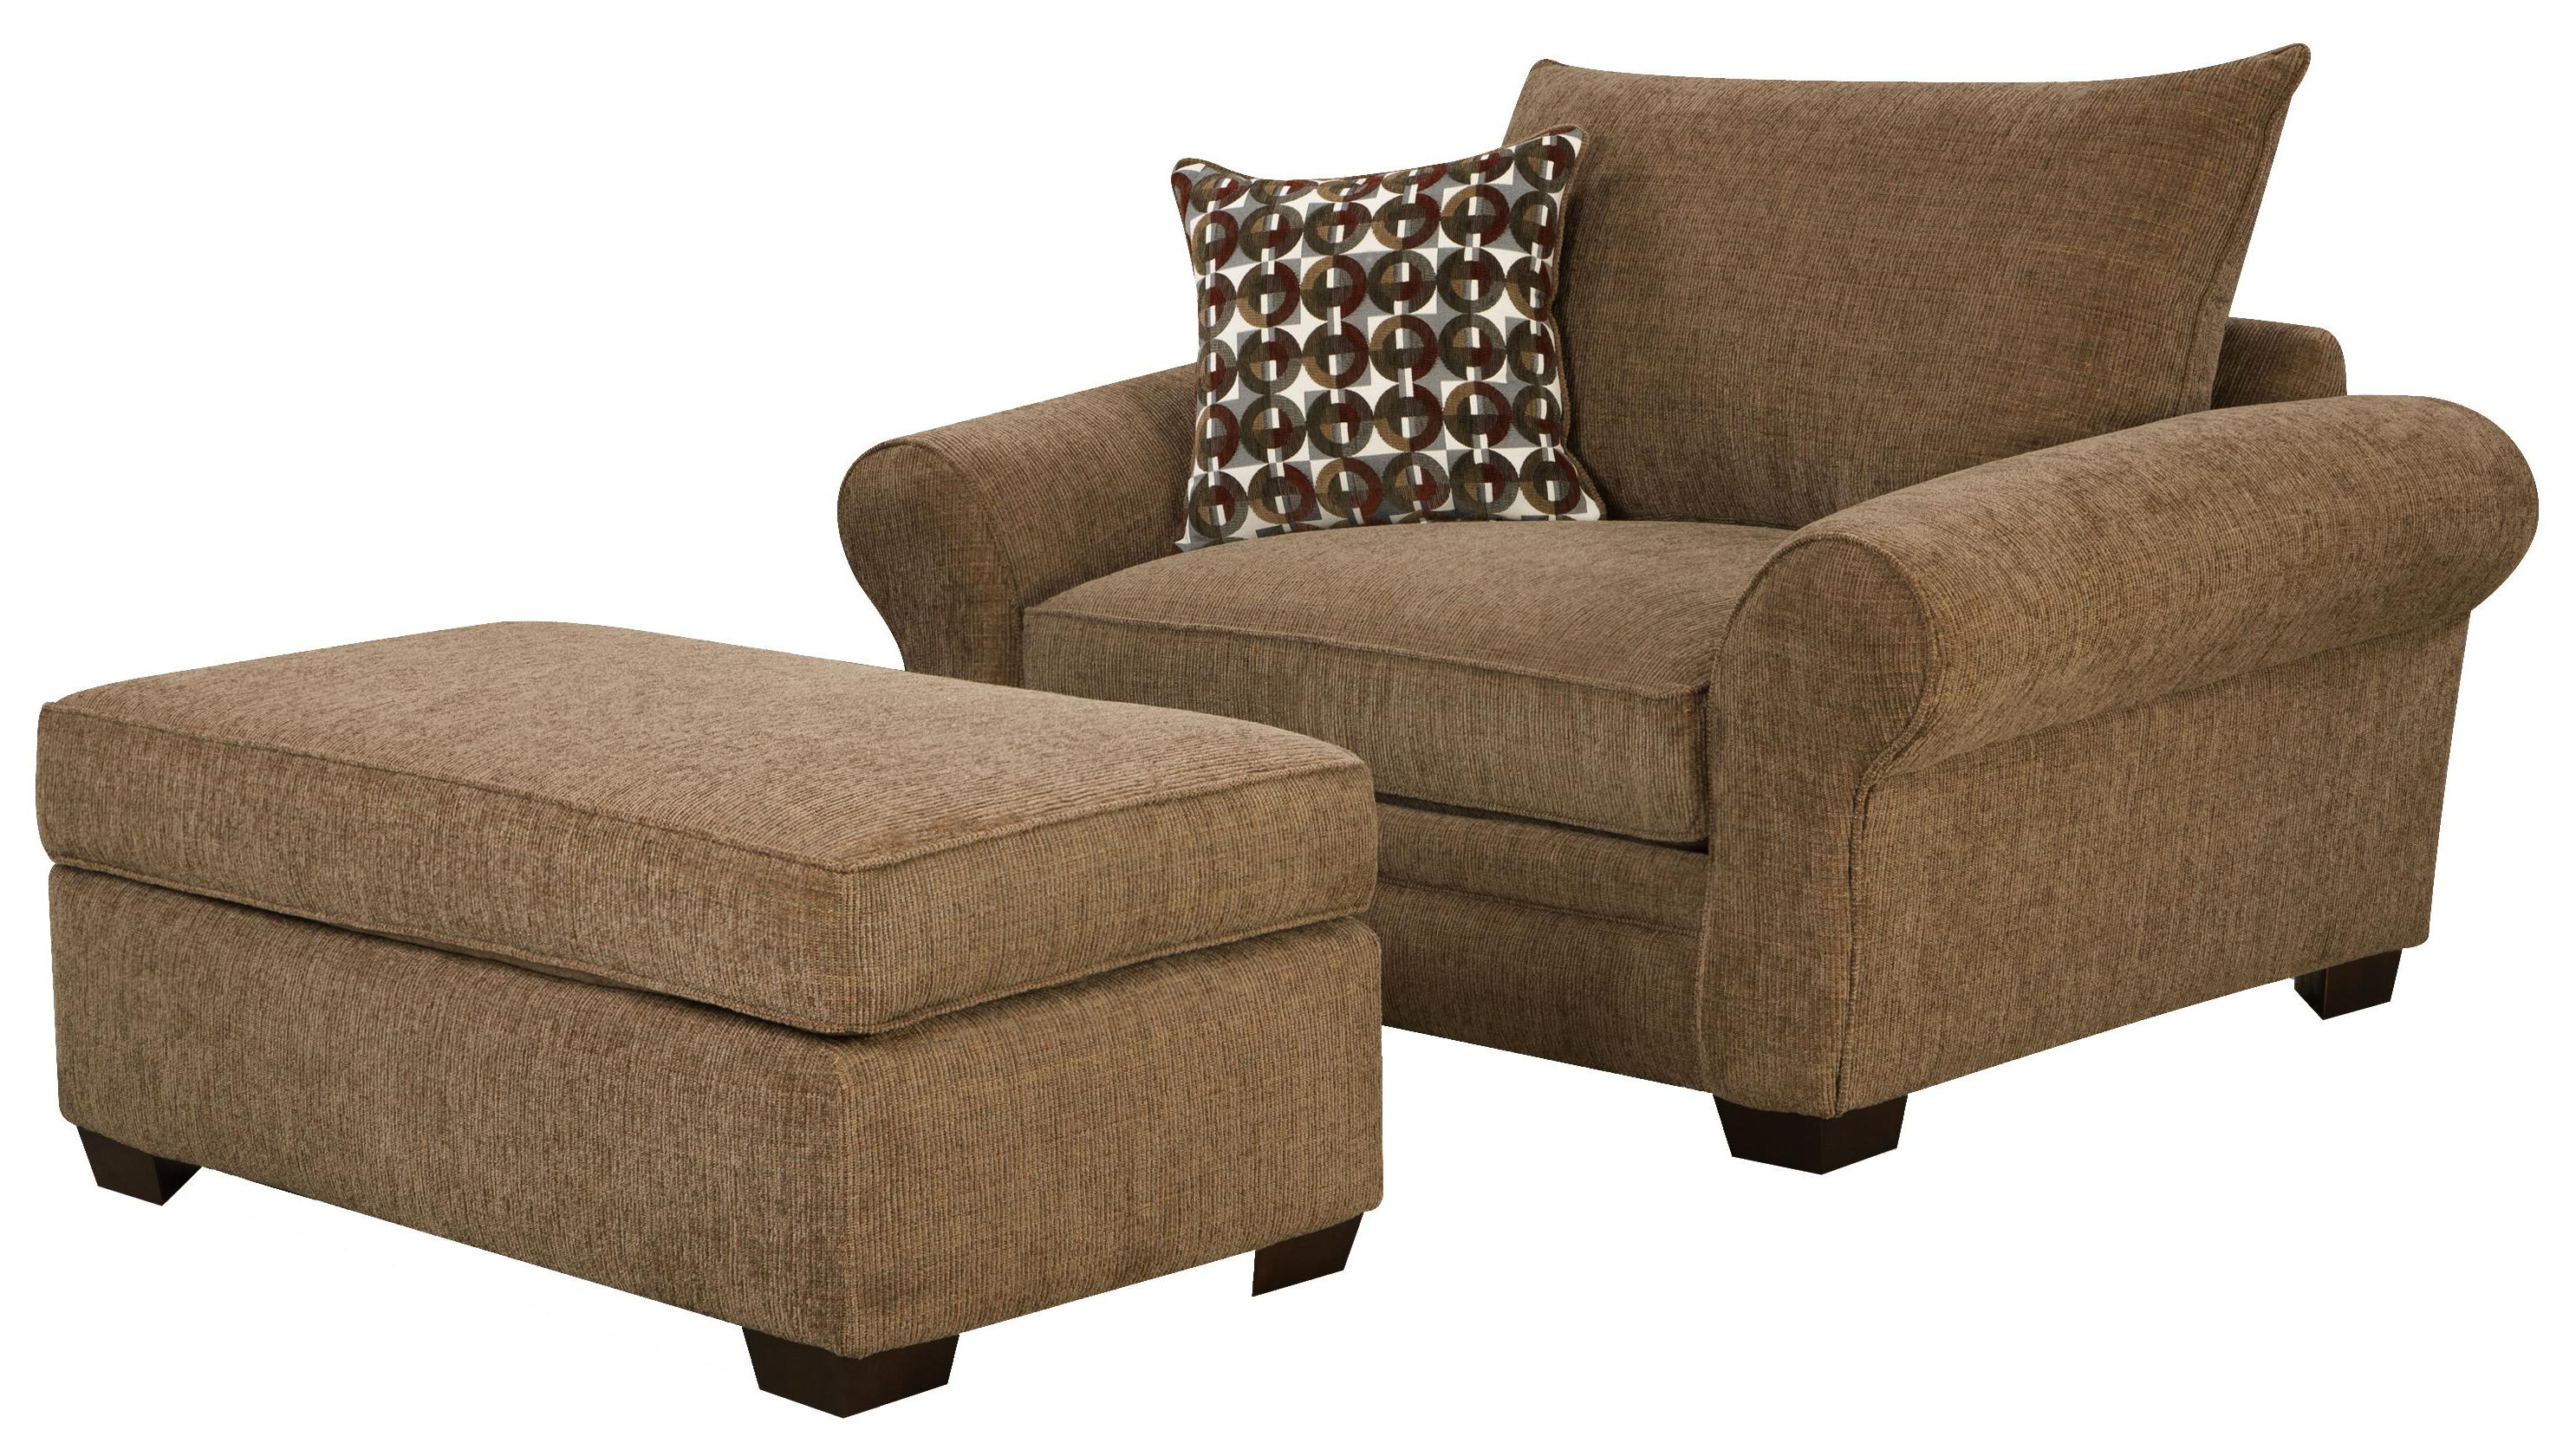 Sofa Chair With Ottoman Pertaining To Best And Newest Extra Large Chair And A Half & Ottoman Set For Casual Styled Living (Gallery 4 of 20)